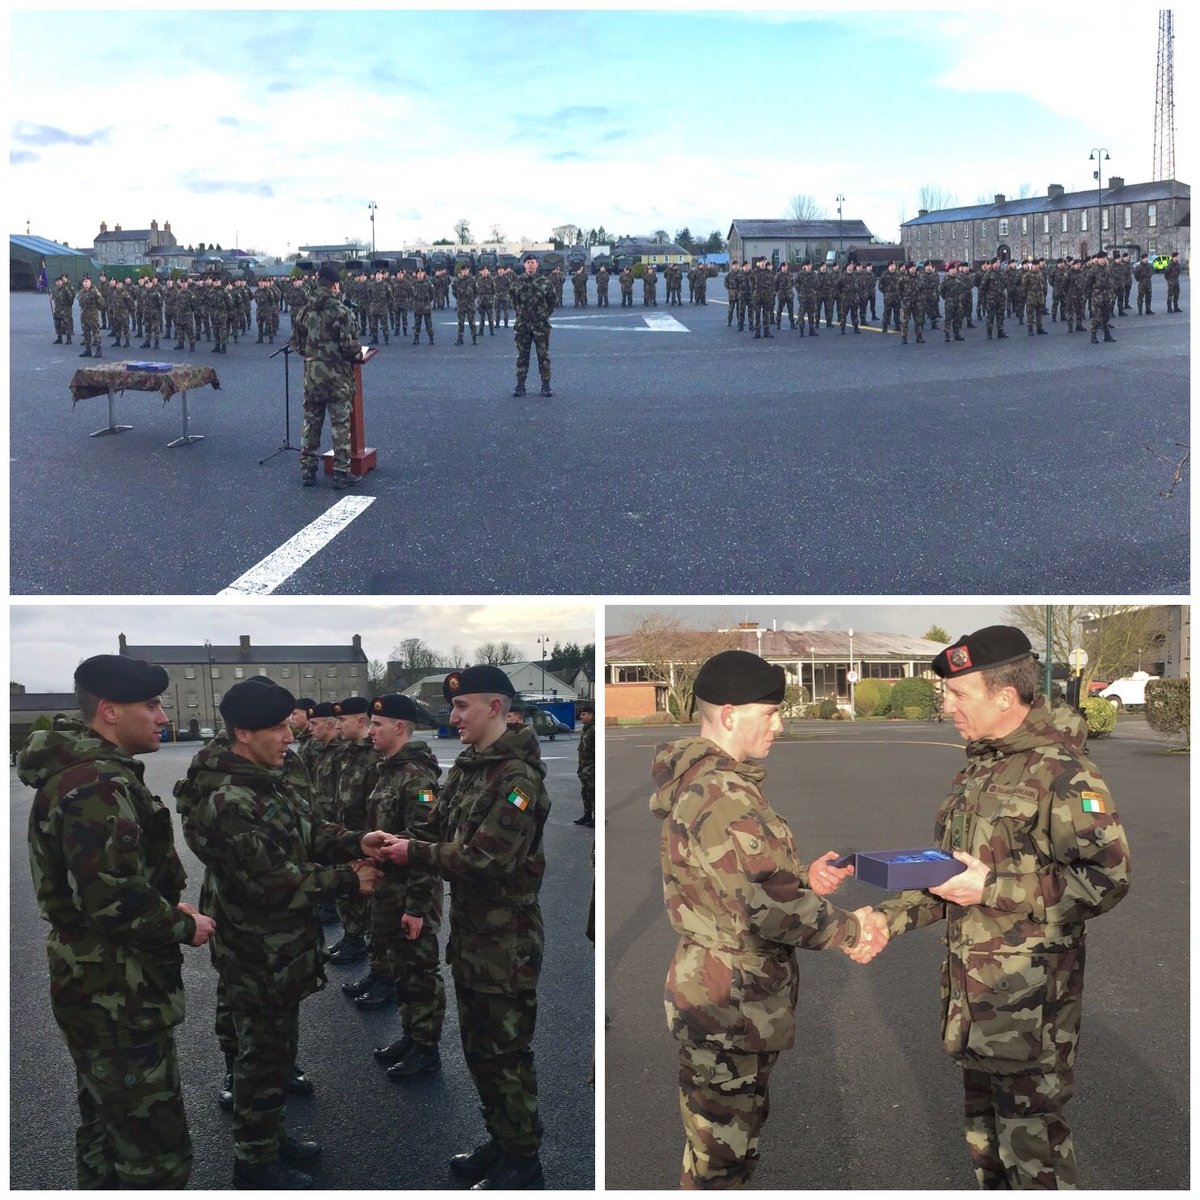 77 99 Personnel Successfully Completed 15 Weeks Of Basic Training Led By 6th Infantry Battalion Developingcapability Defenceforcespictwitter